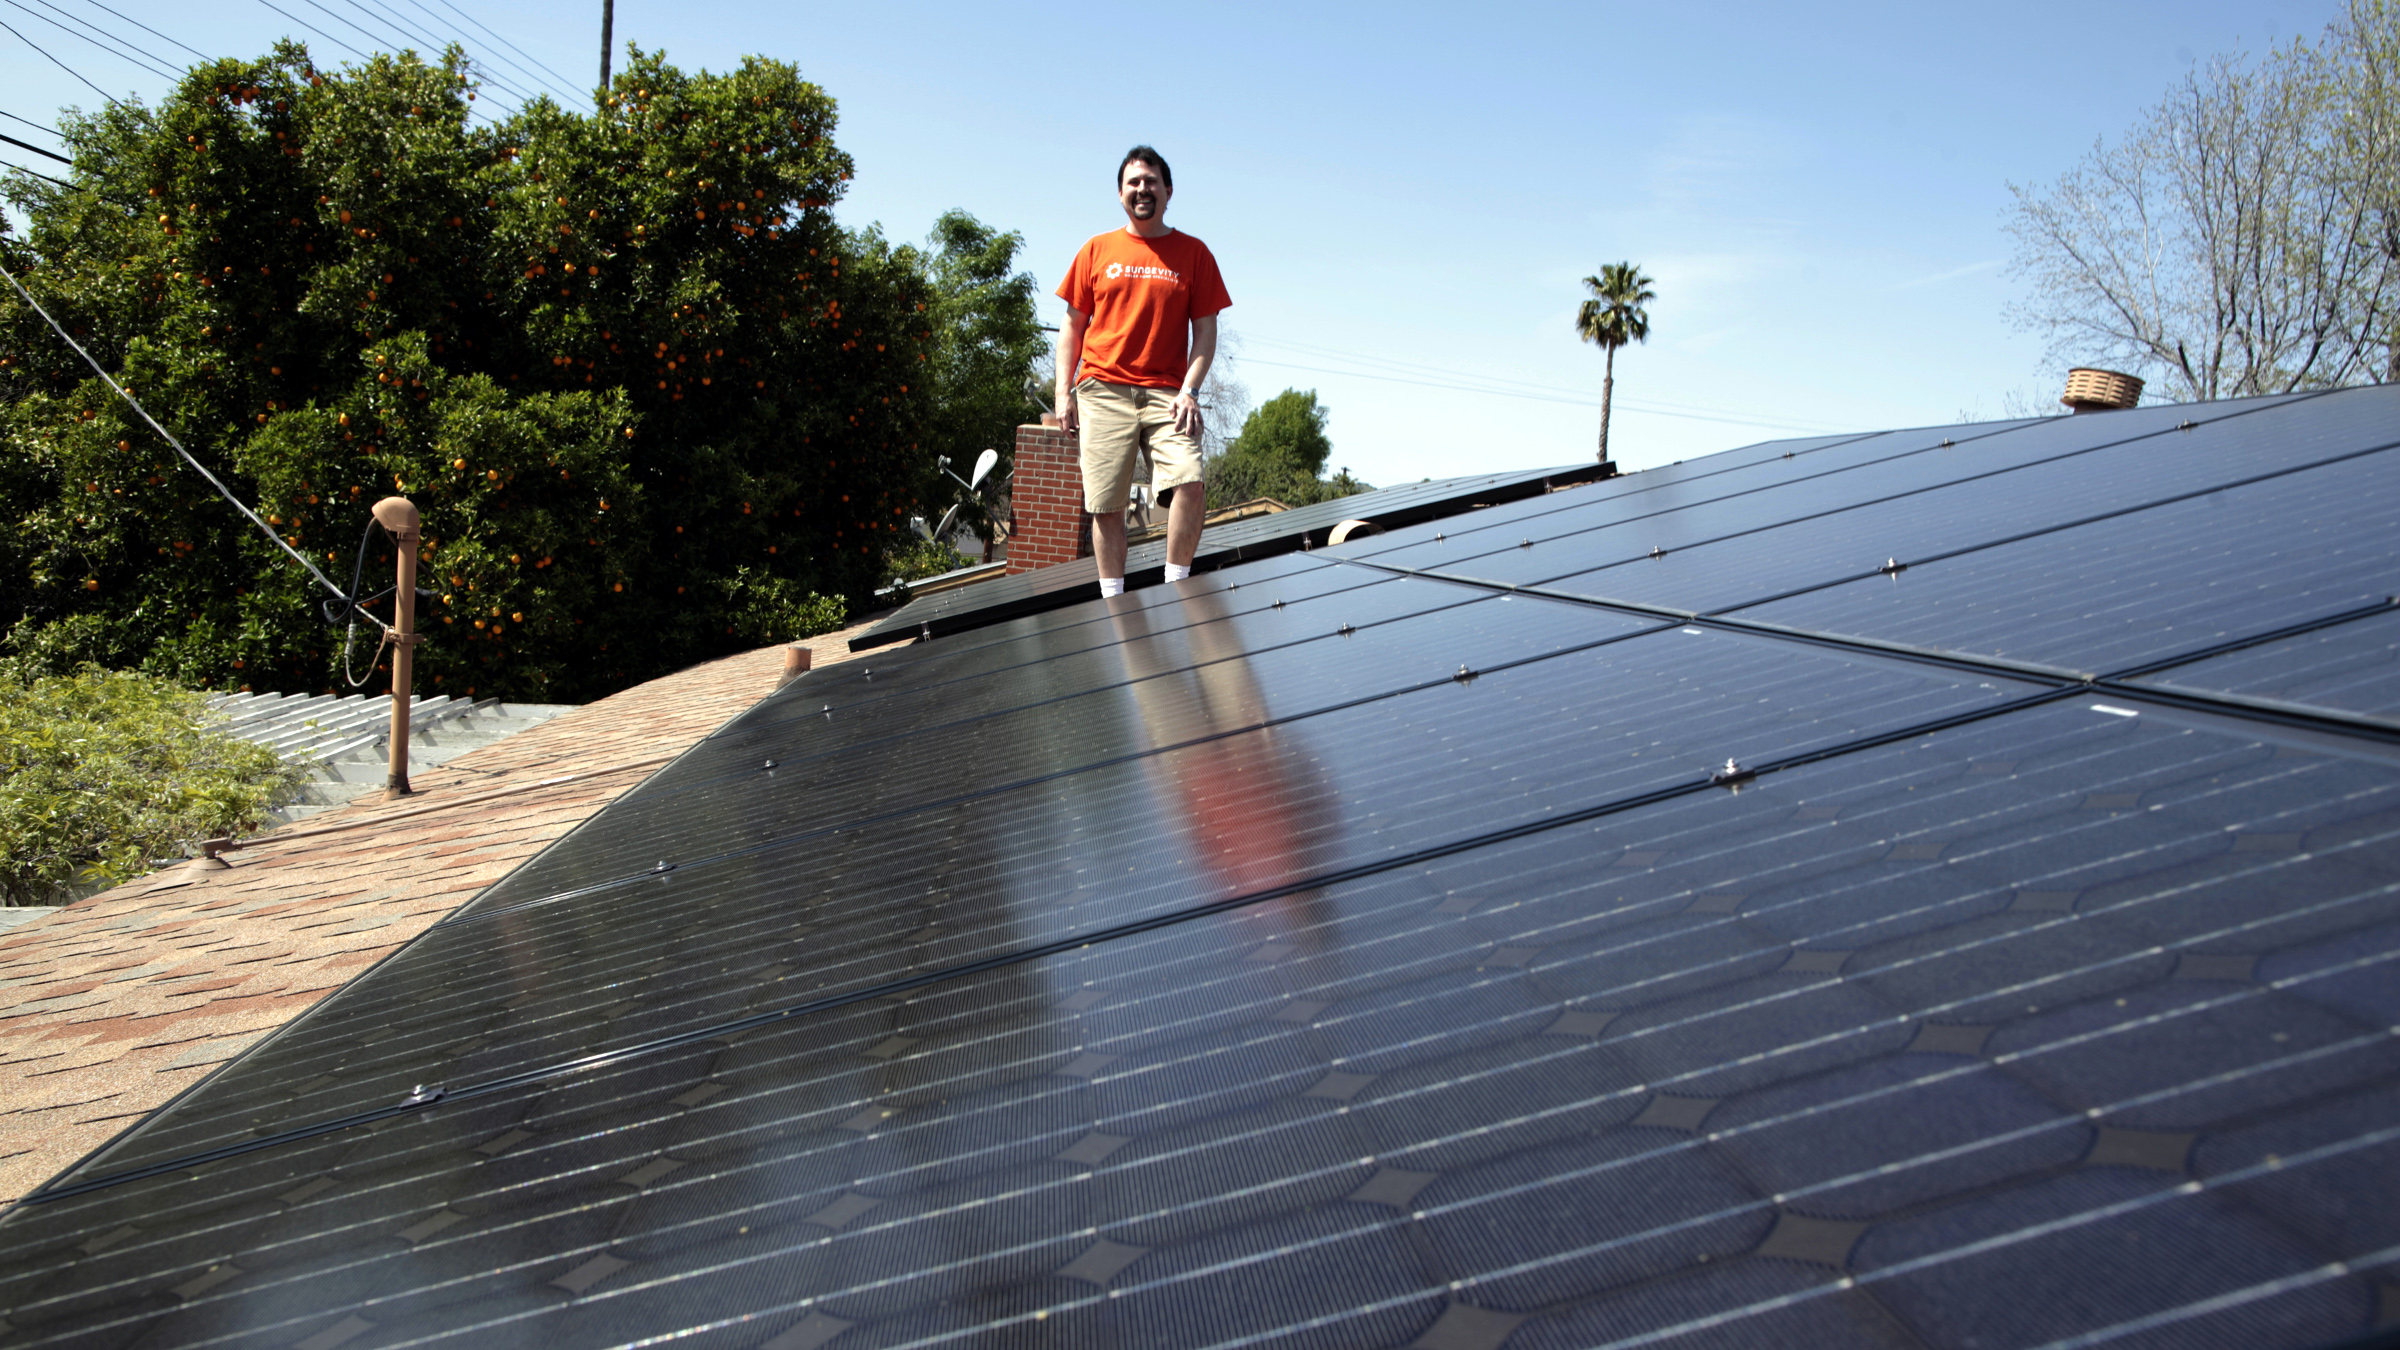 Mike Jones stands next to solar panels on the roof of his home in Los Angeles, California March 18, 2011. Jones leased 22 solar panels from solar electric system company Sungevity. The panels would have cost him $13,000, but the 20-year lease cost $4,000. The first month after the panels were installed Jones' electricity bill went down from $160 to $11. (UNITED STATES - Tags: ENVIRONMENT ENERGY)